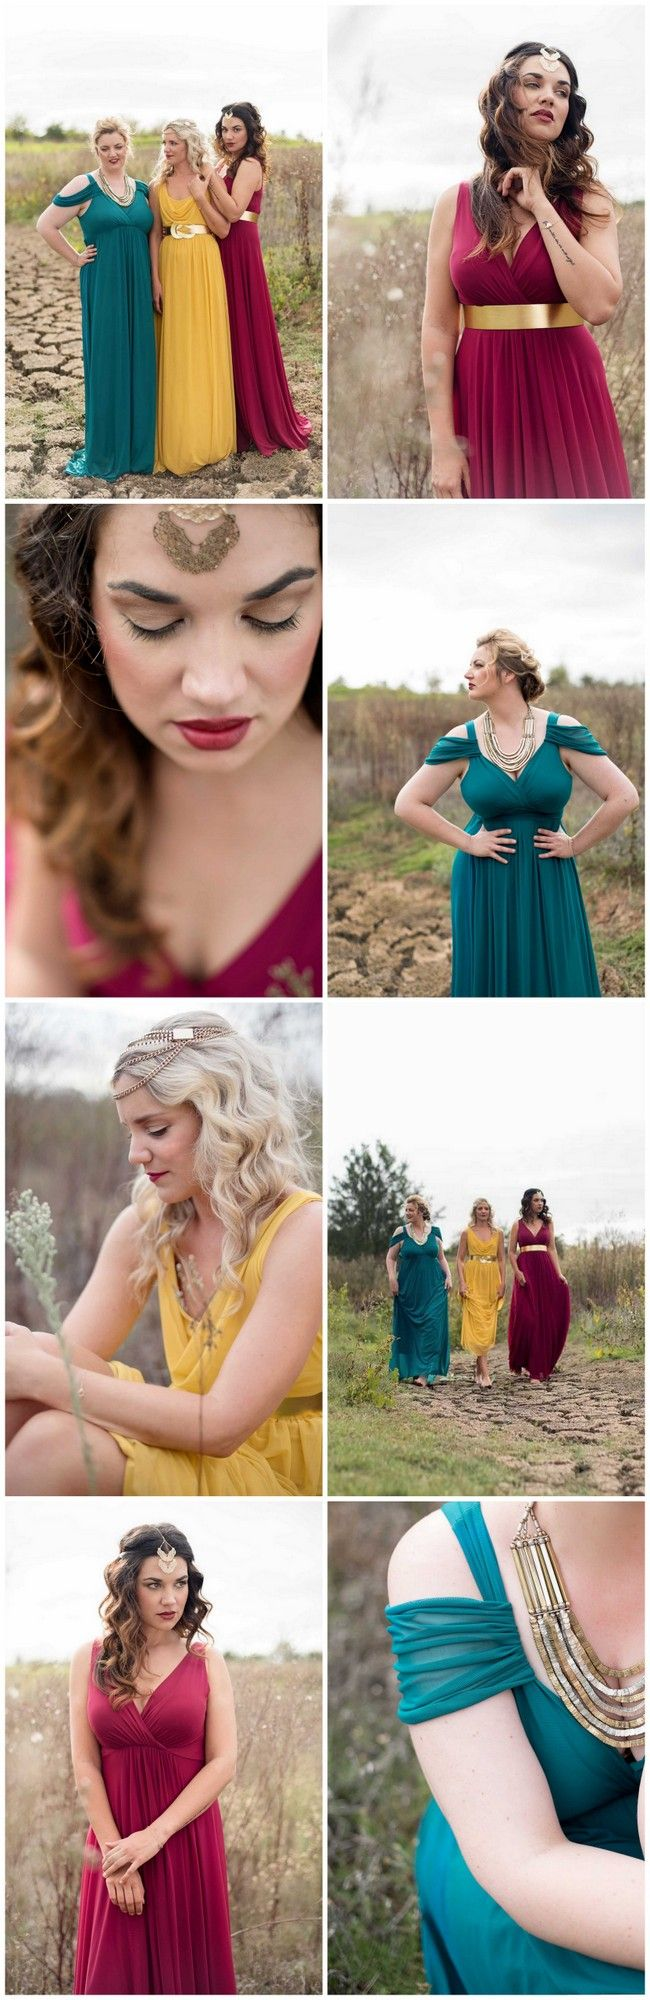 If you're looking for a bold statement, try mixing strong but complementary, solid colors in the gowns of the same length. Bring the look together with statement accessories in the same shade and theme that unify the looks between all the girls.